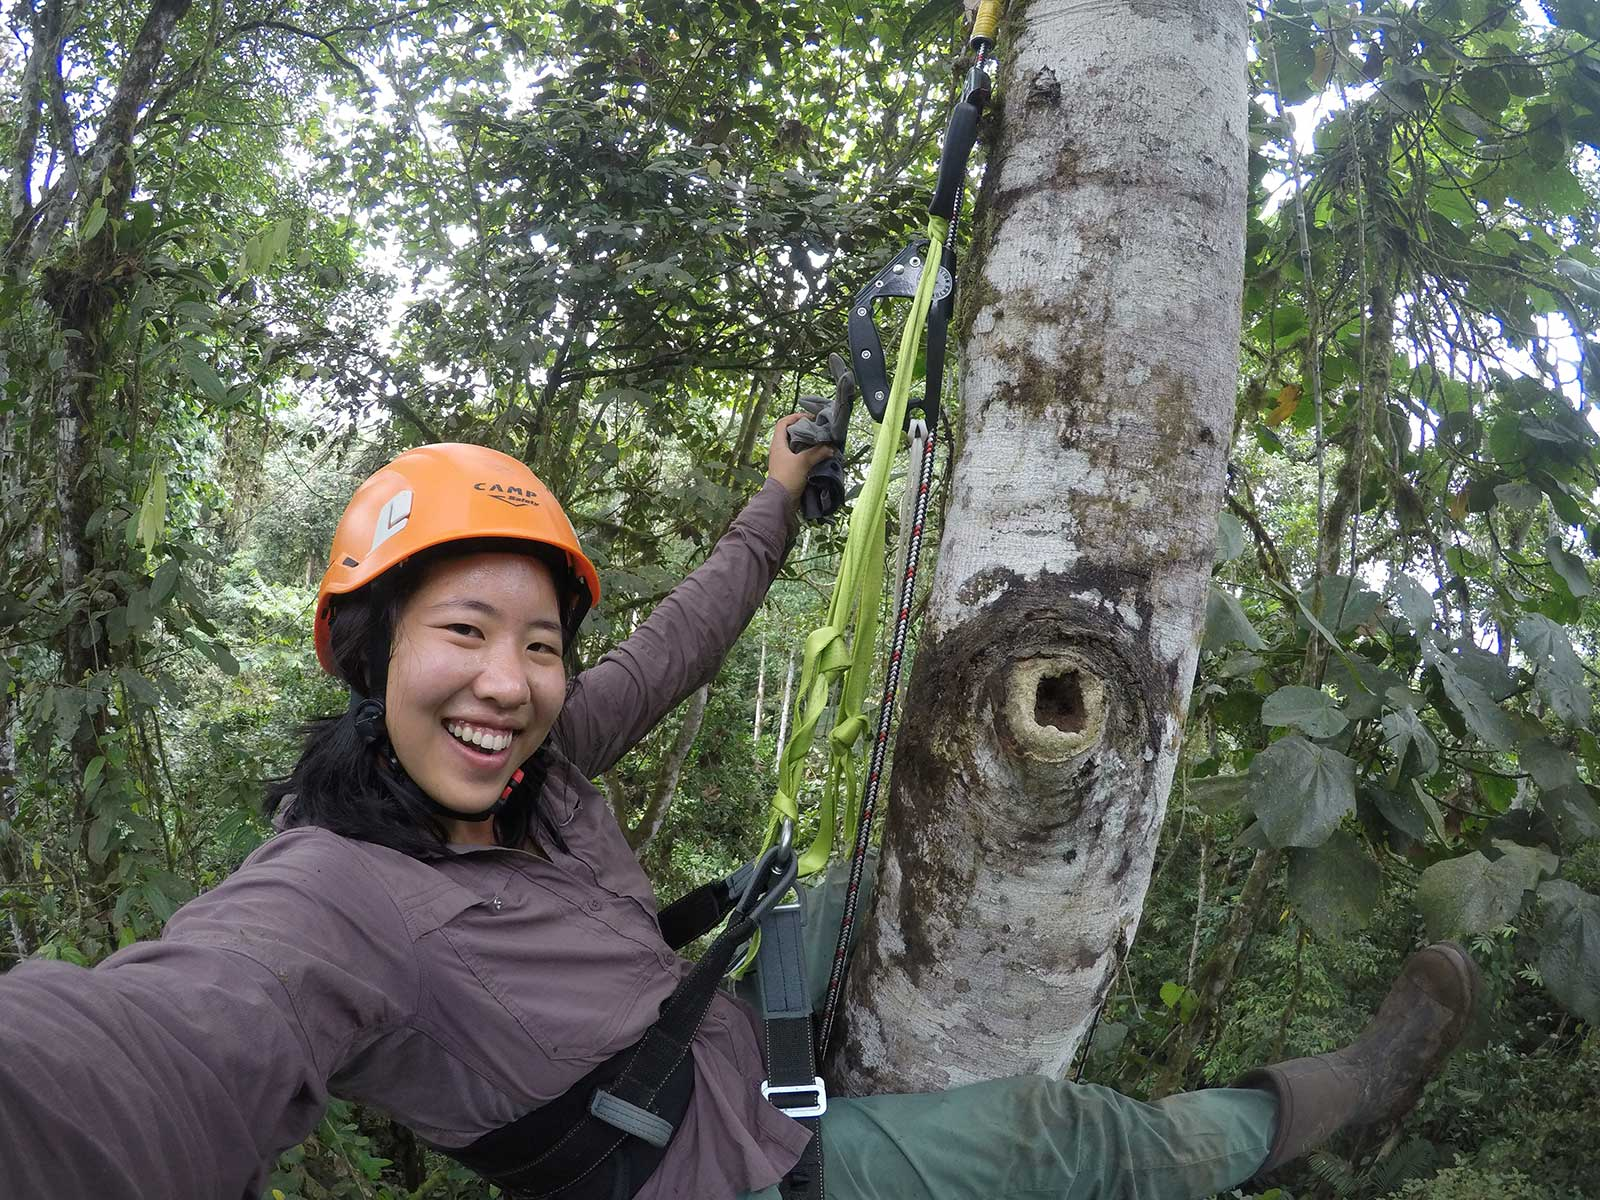 A smiling volunteer climbs a tall tree in the forest